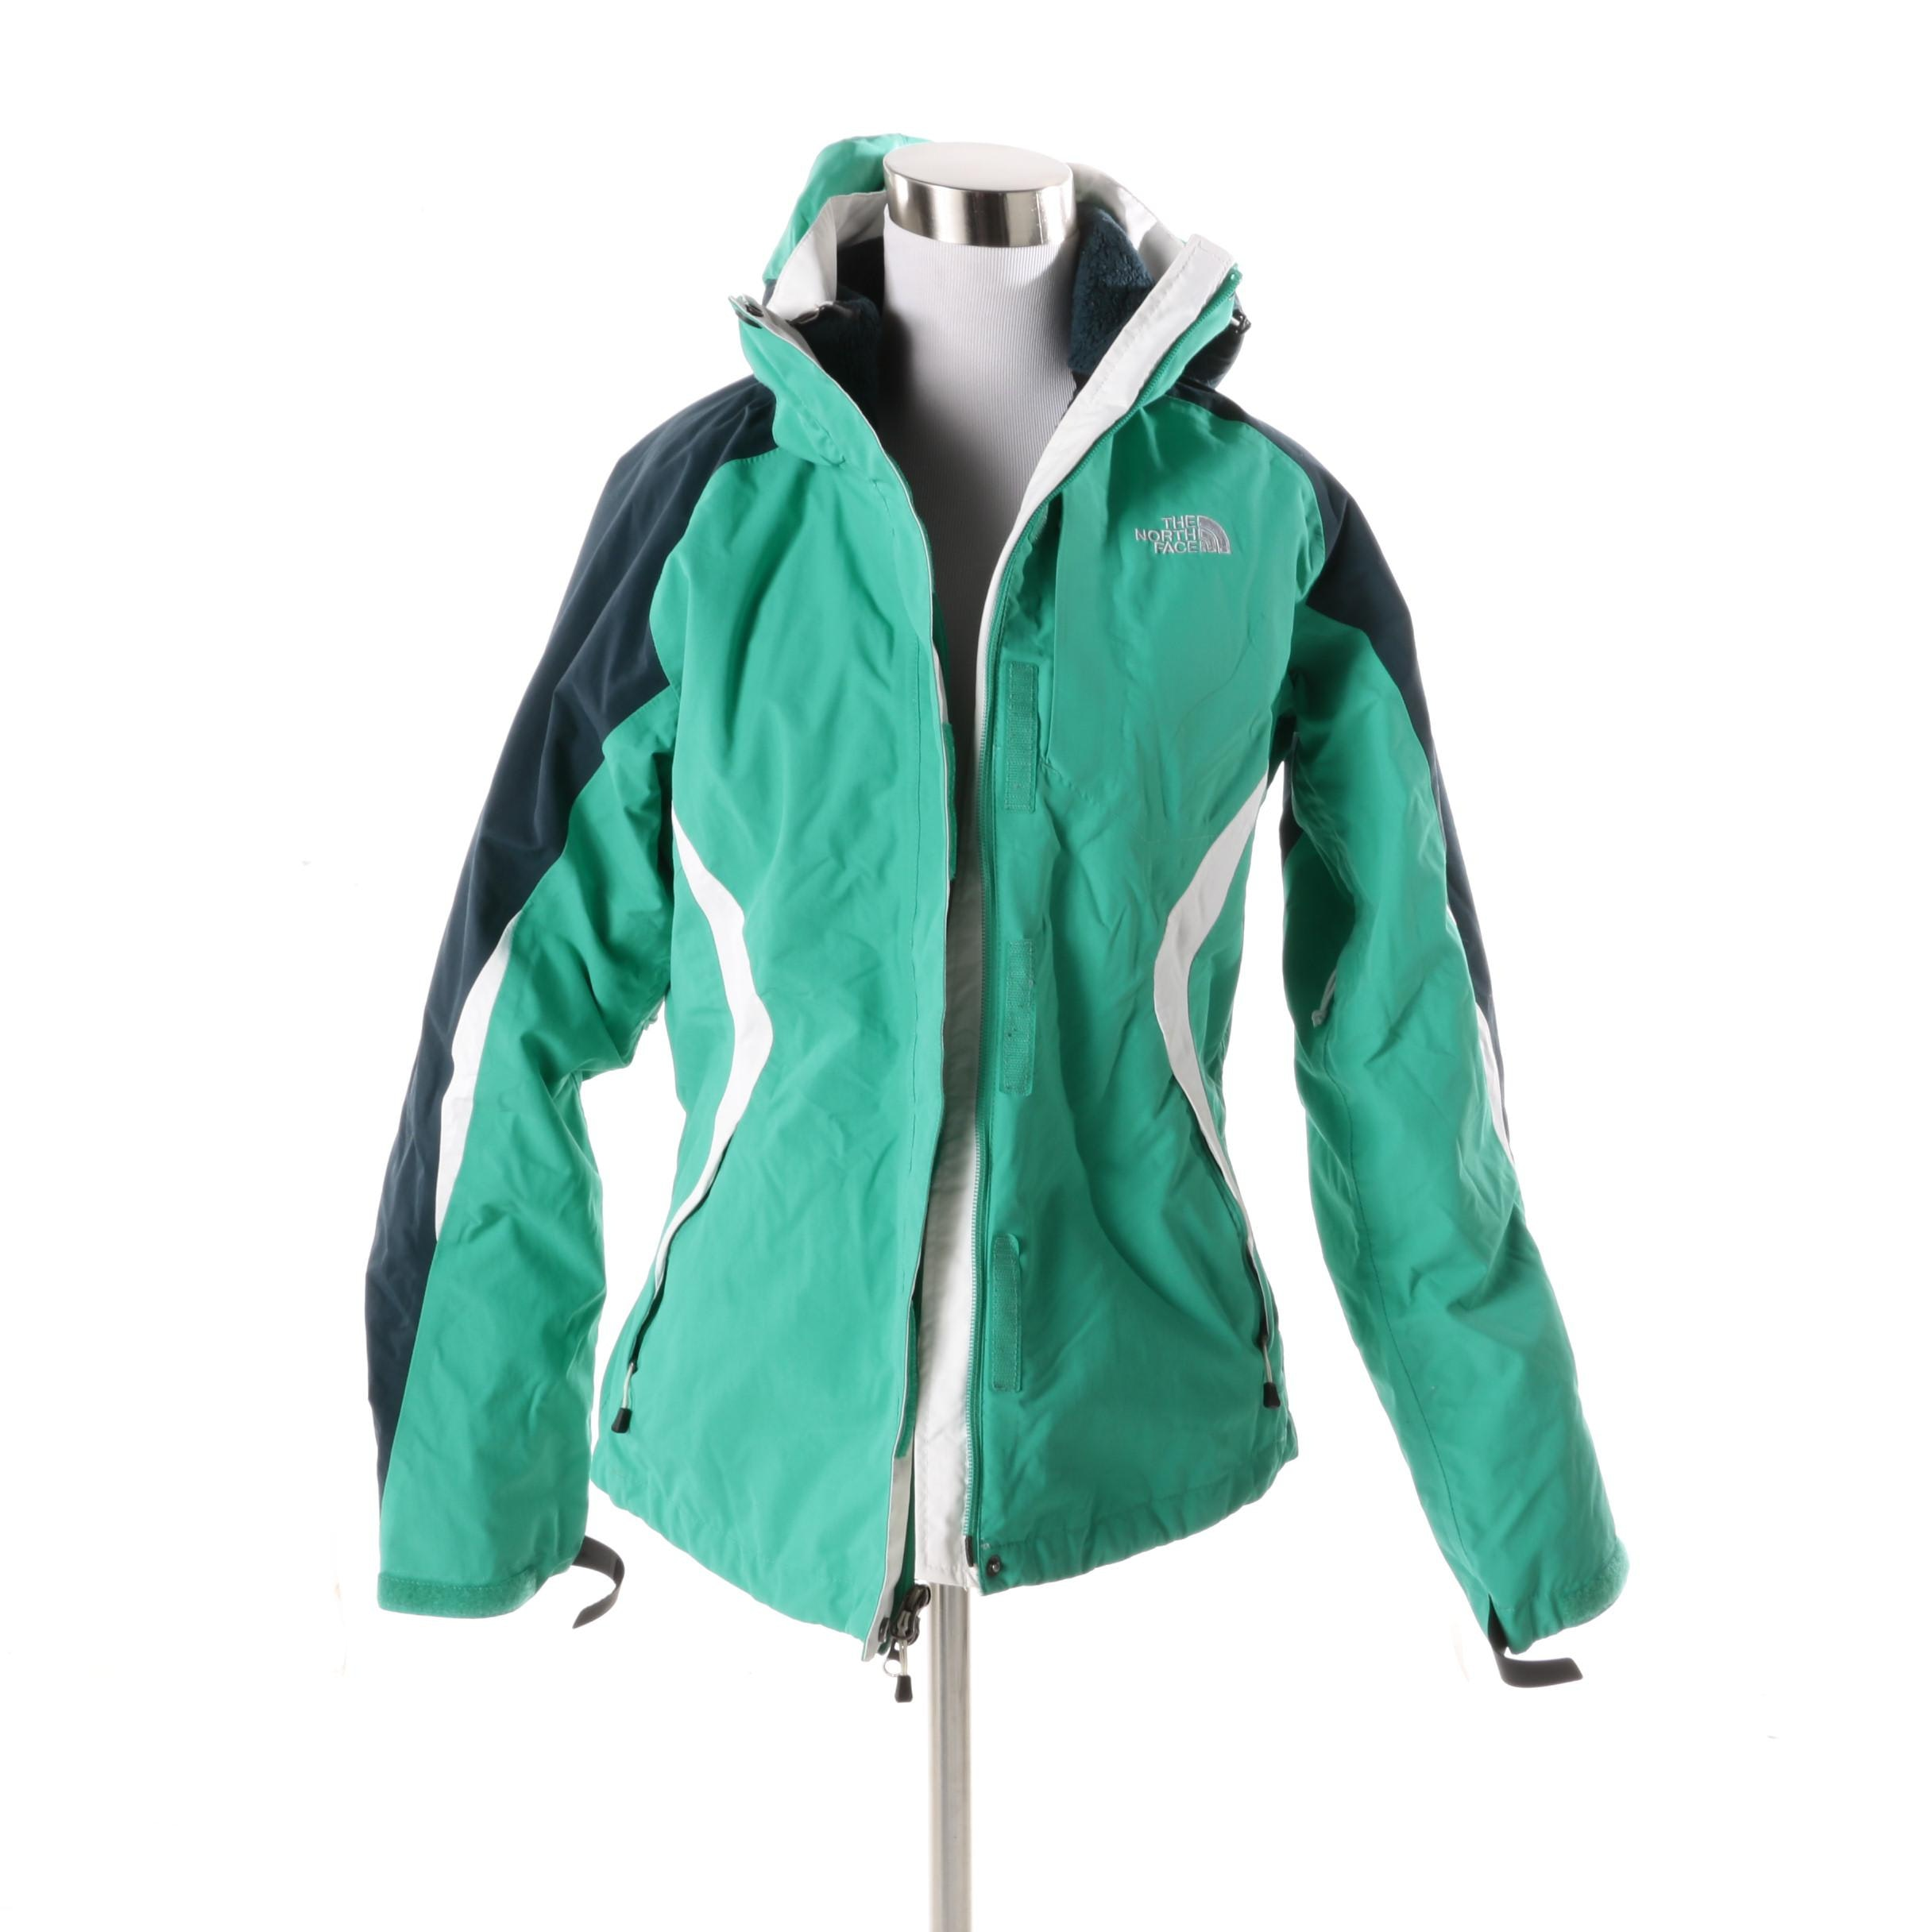 Women's The North Face Ski Jacket